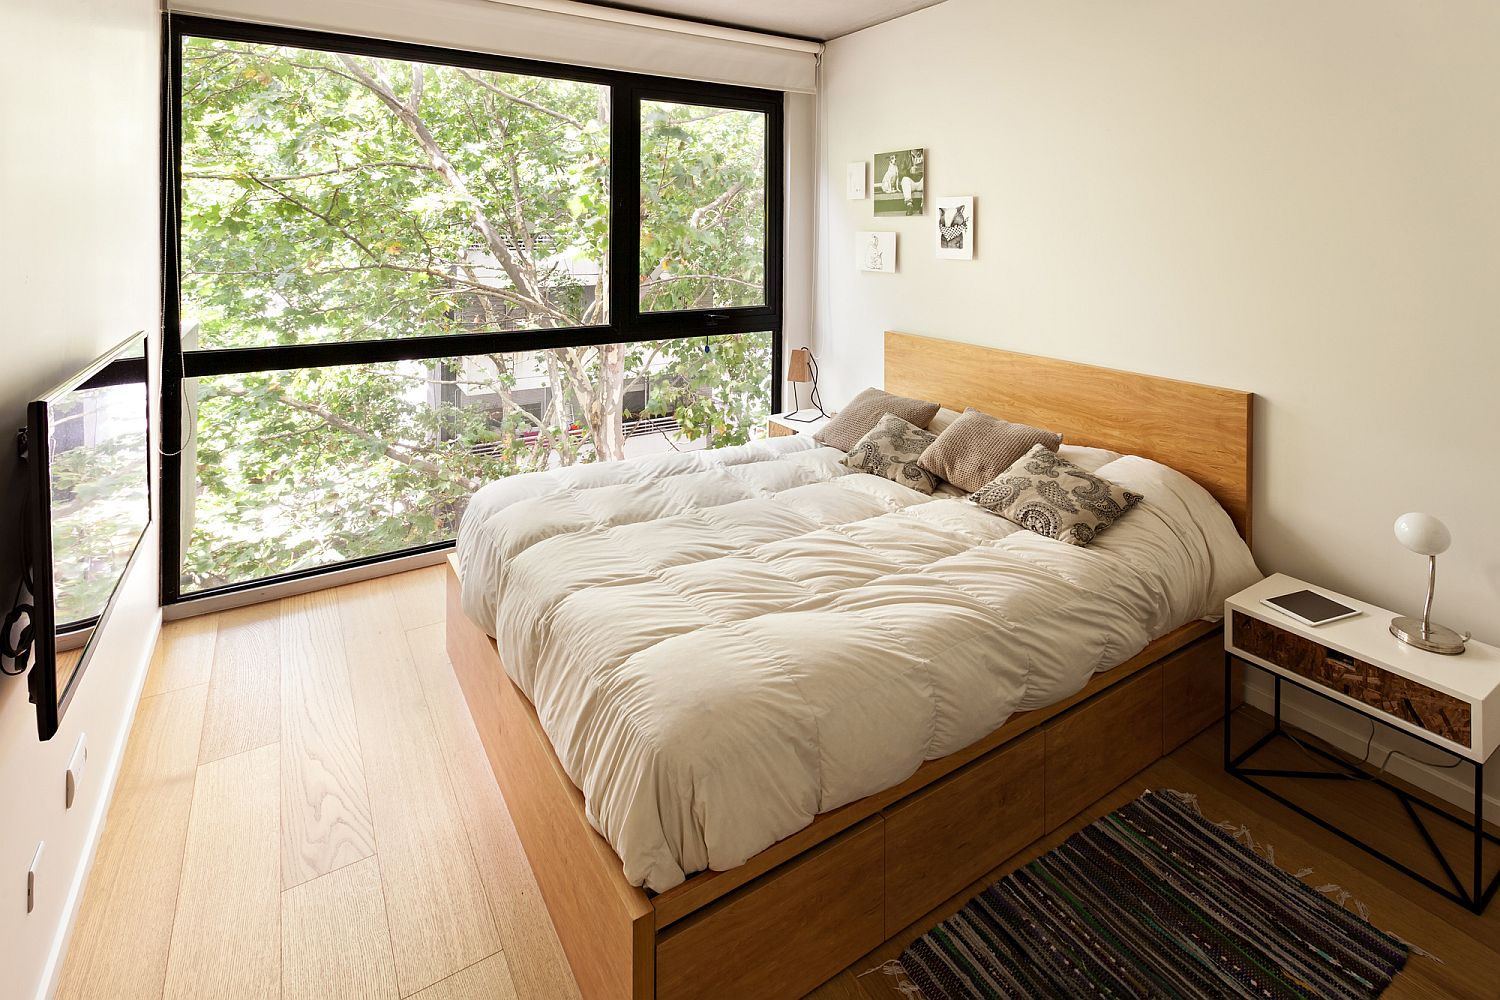 Modern-bedroom-in-white-with-wooden-flooring-and-a-space-savvy-bedside-table